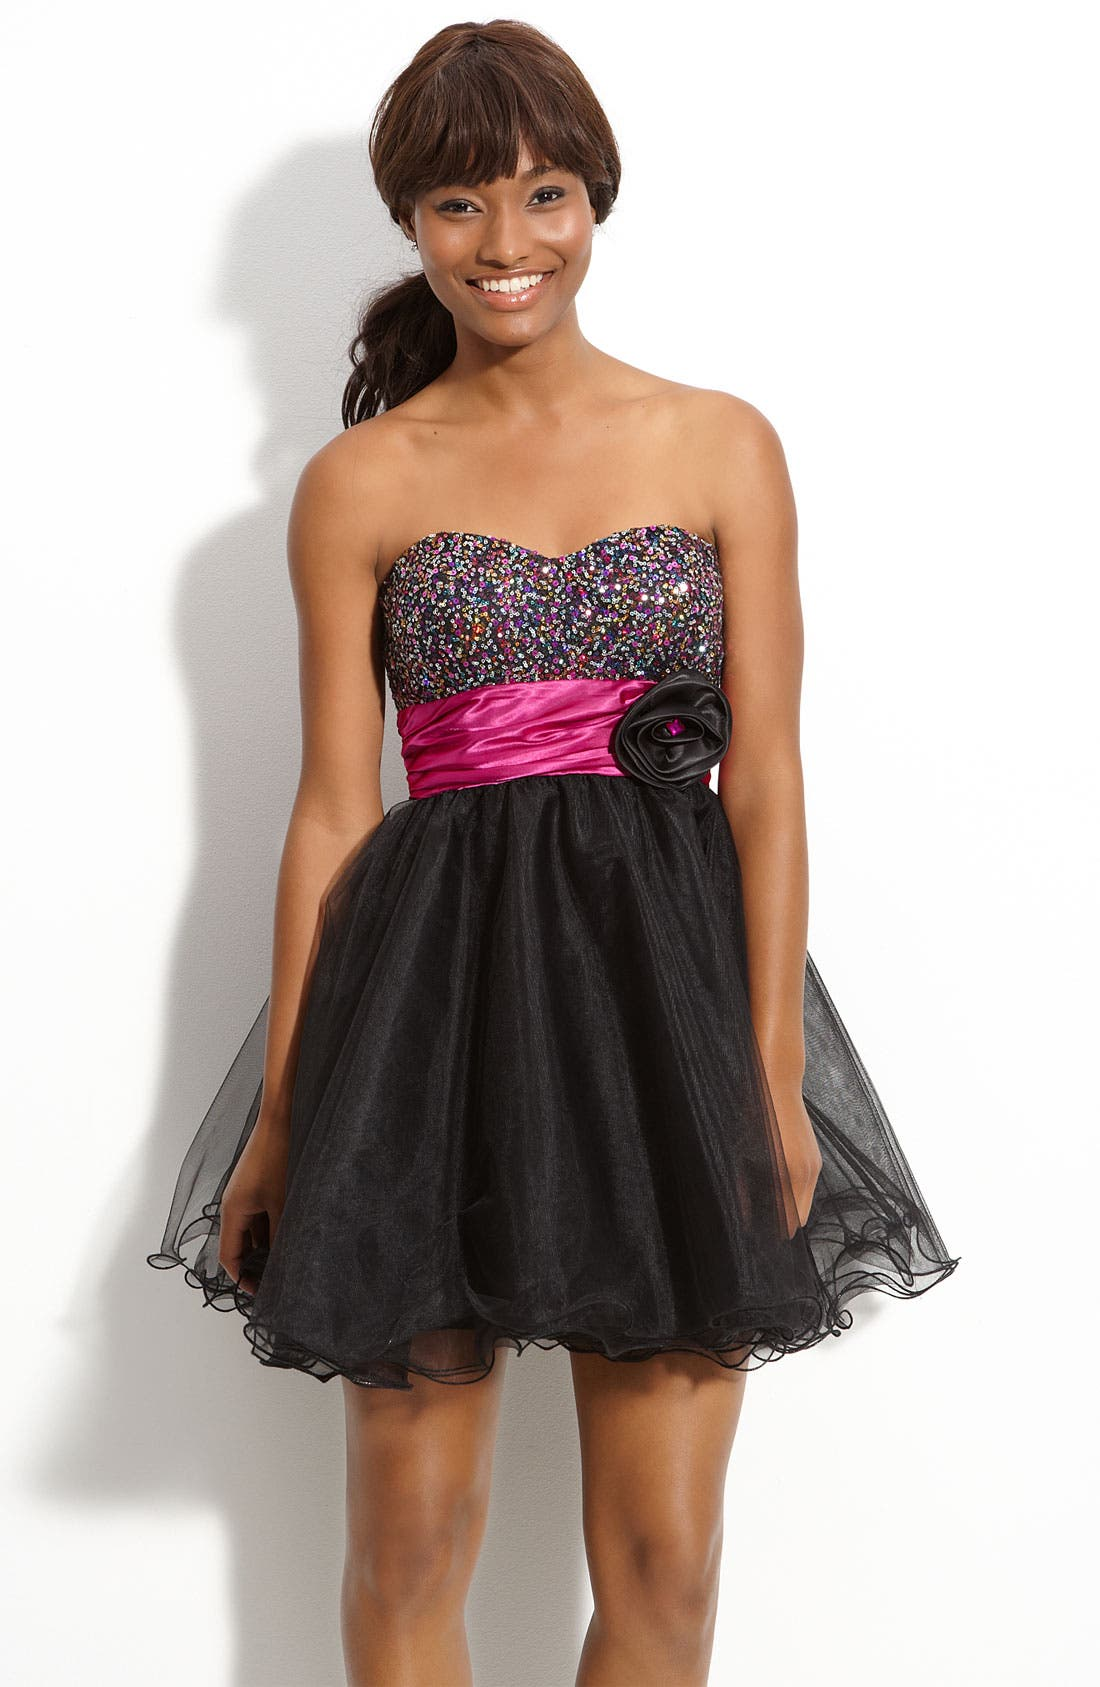 Alternate Image 1 Selected - Accidentally In Love Sequin Embellished Dress (Juniors)